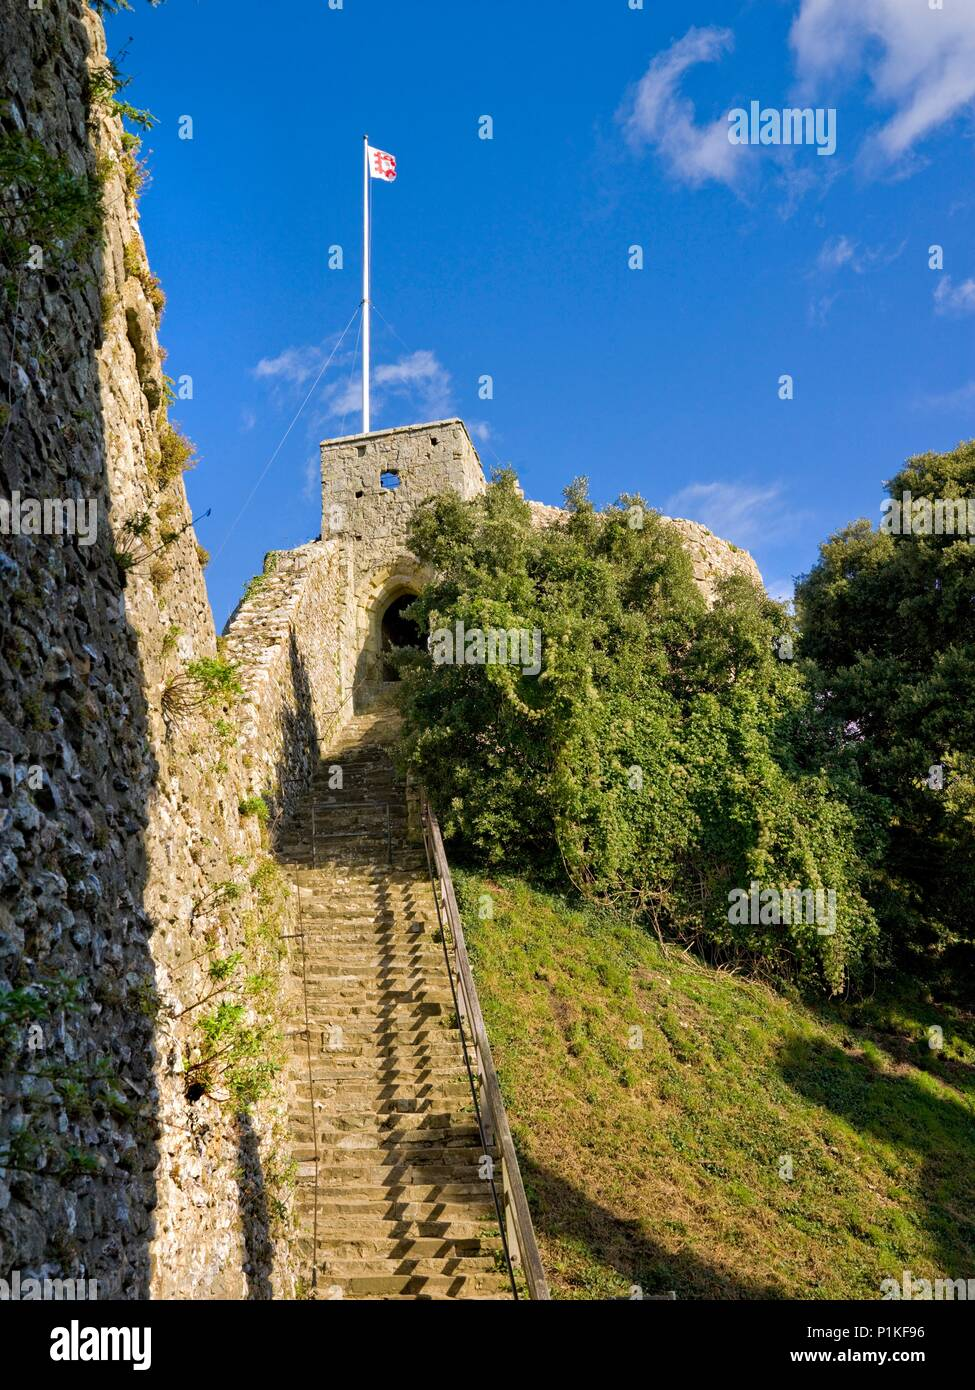 Carisbrooke Castle, Isle of Wight, c1980-c2017. View up the stairs to the keep with the flag of English Heritage flying. King Charles I was imprisoned - Stock Image